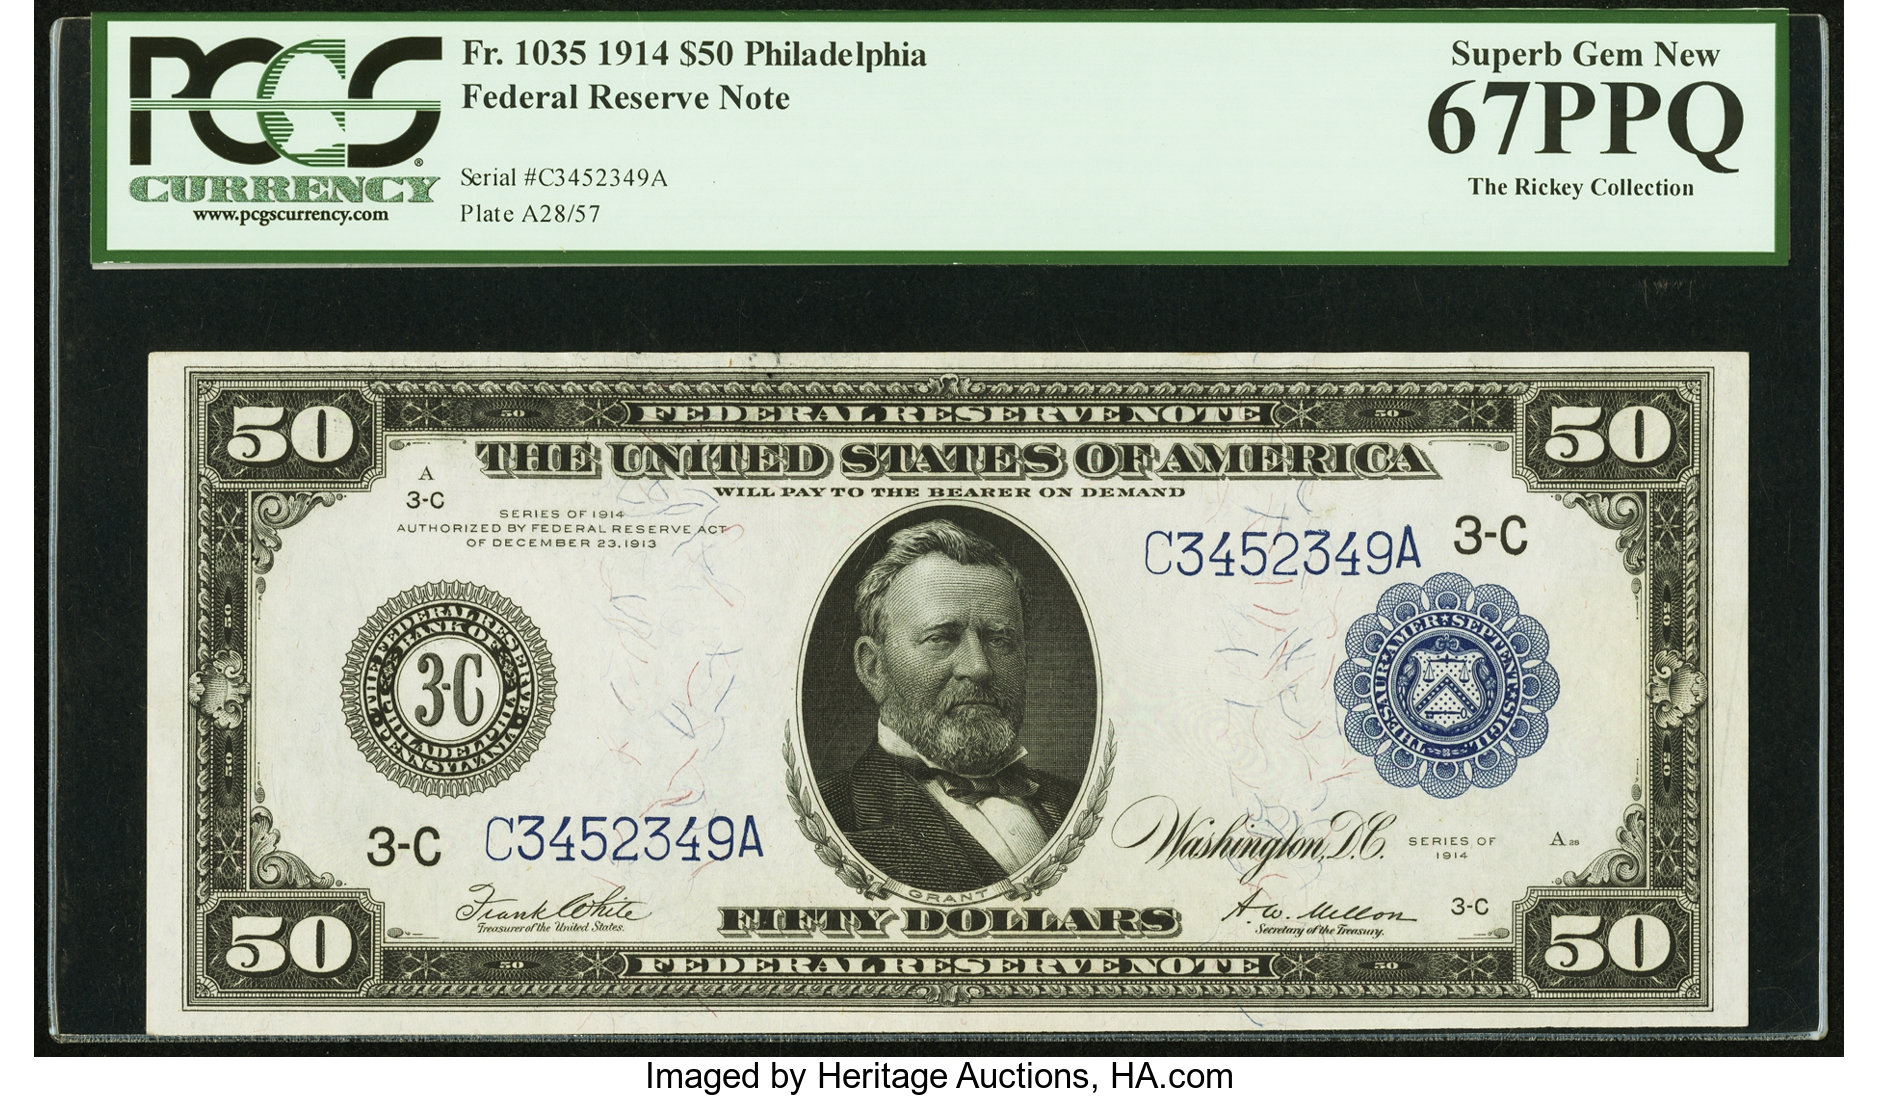 sample image for Fr.1035 $50 Philly